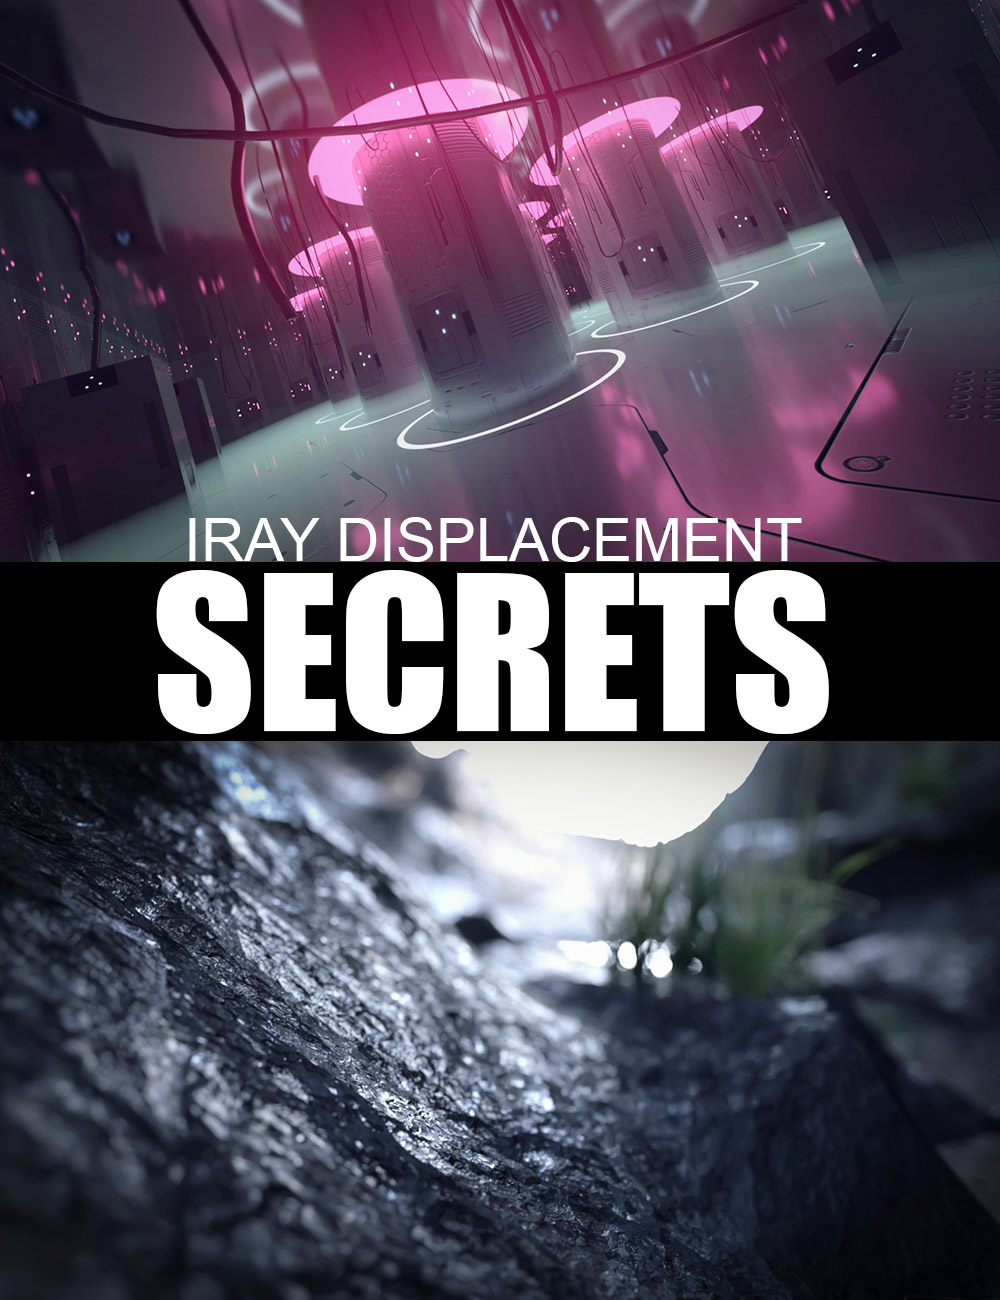 Iray Displacement Secrets - Video Tutorial by: Dreamlight, 3D Models by Daz 3D